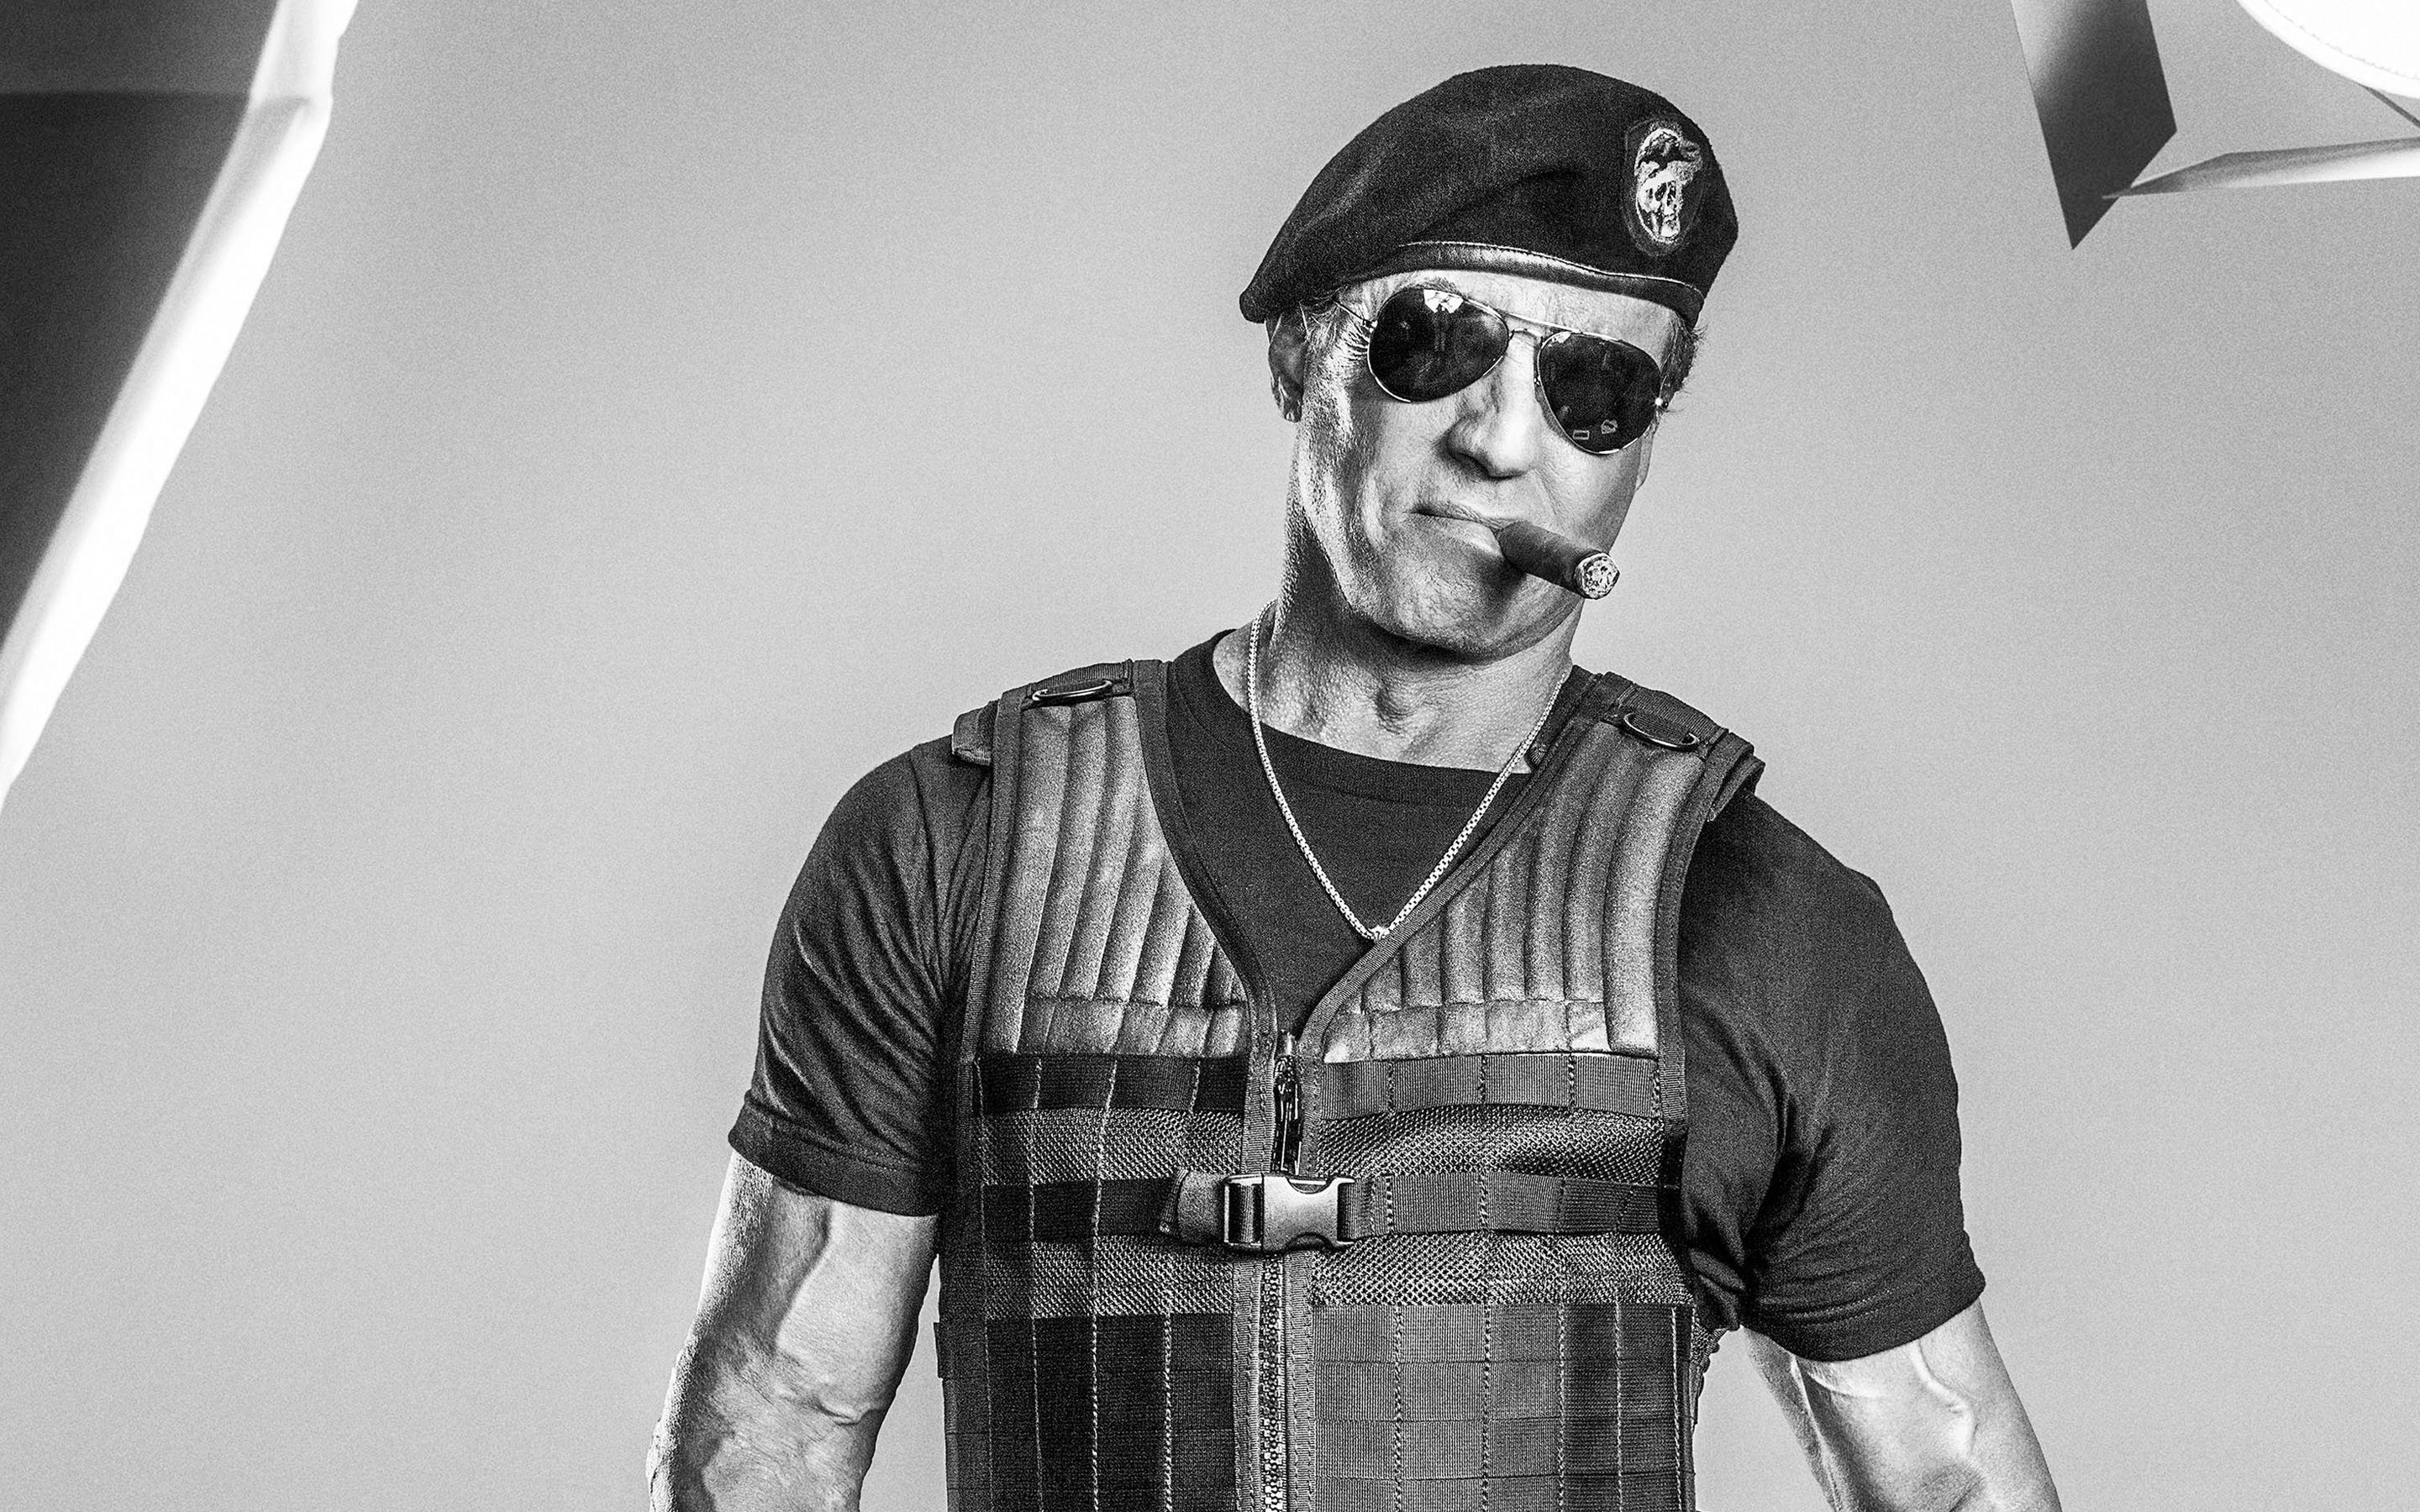 Sylvester Stallone in The Expendables 3 1234.1 Kb